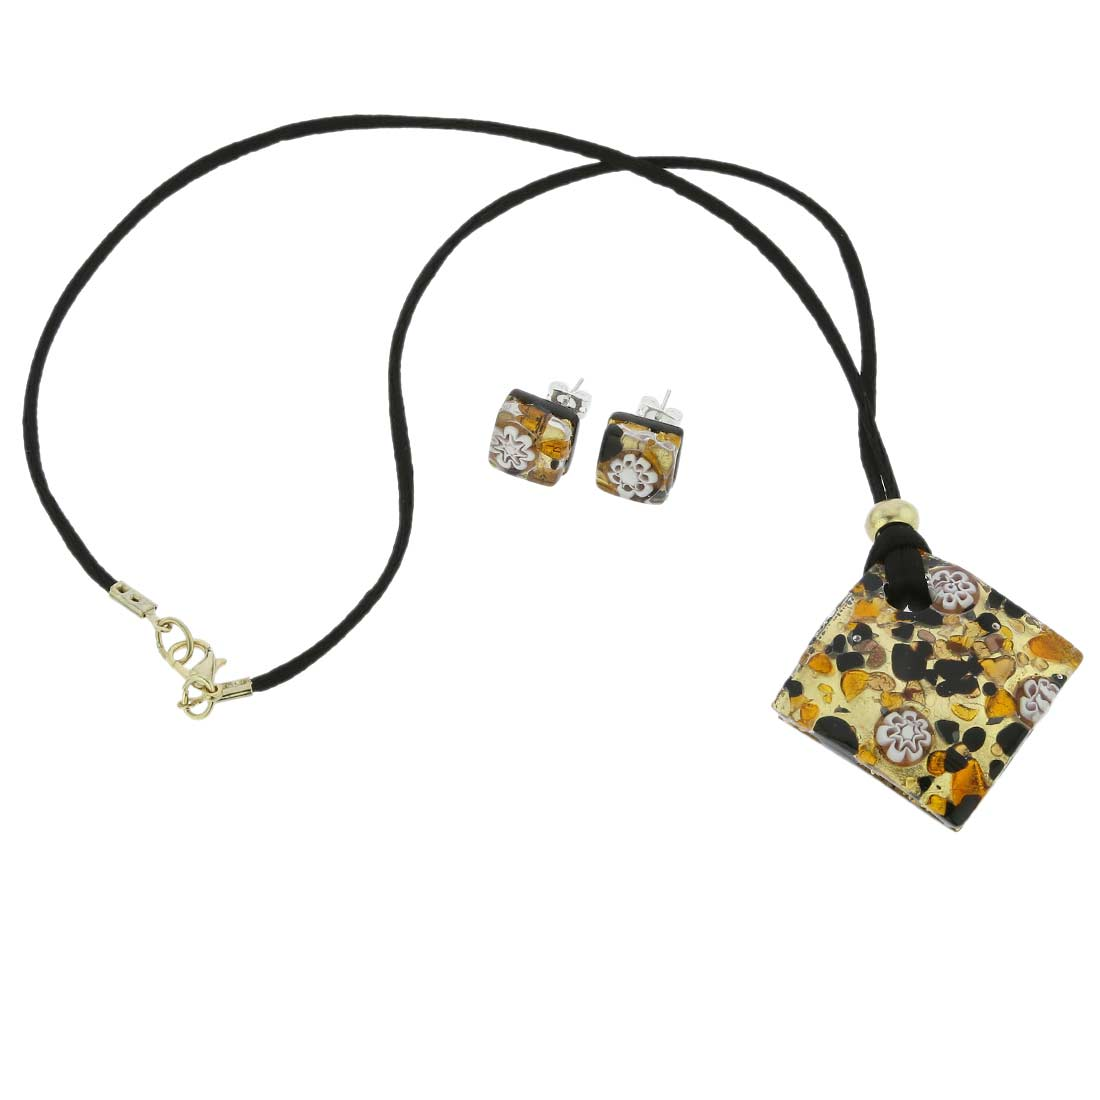 Venetian Reflections Necklace and Earrings Set - Topaz Gold